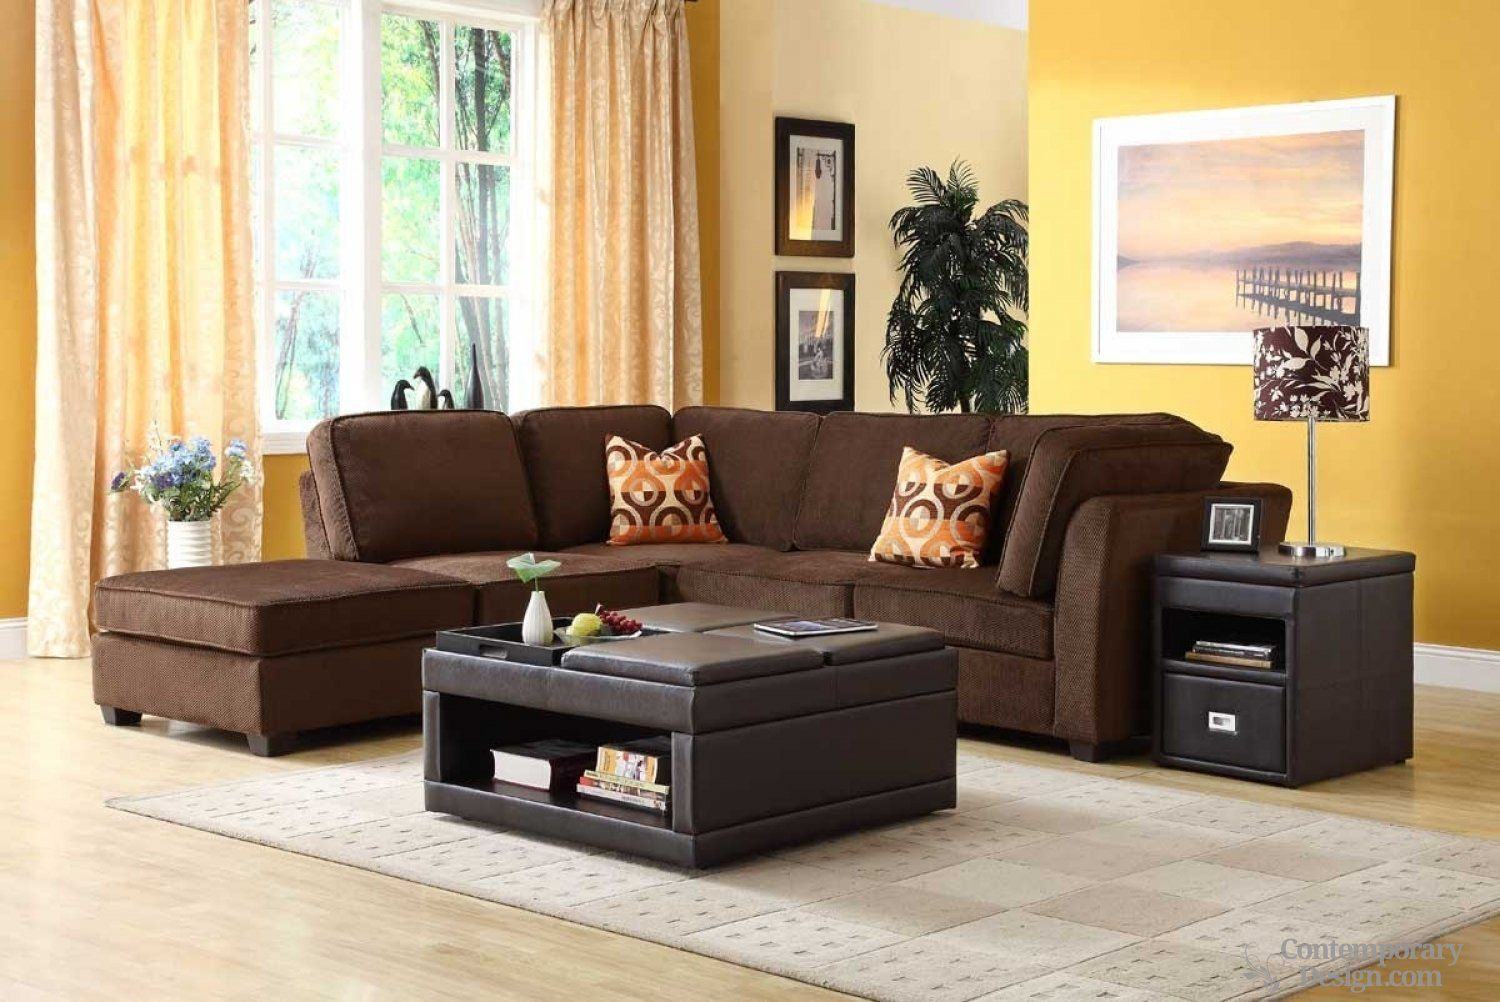 living room paint color ideas with brown furniture with